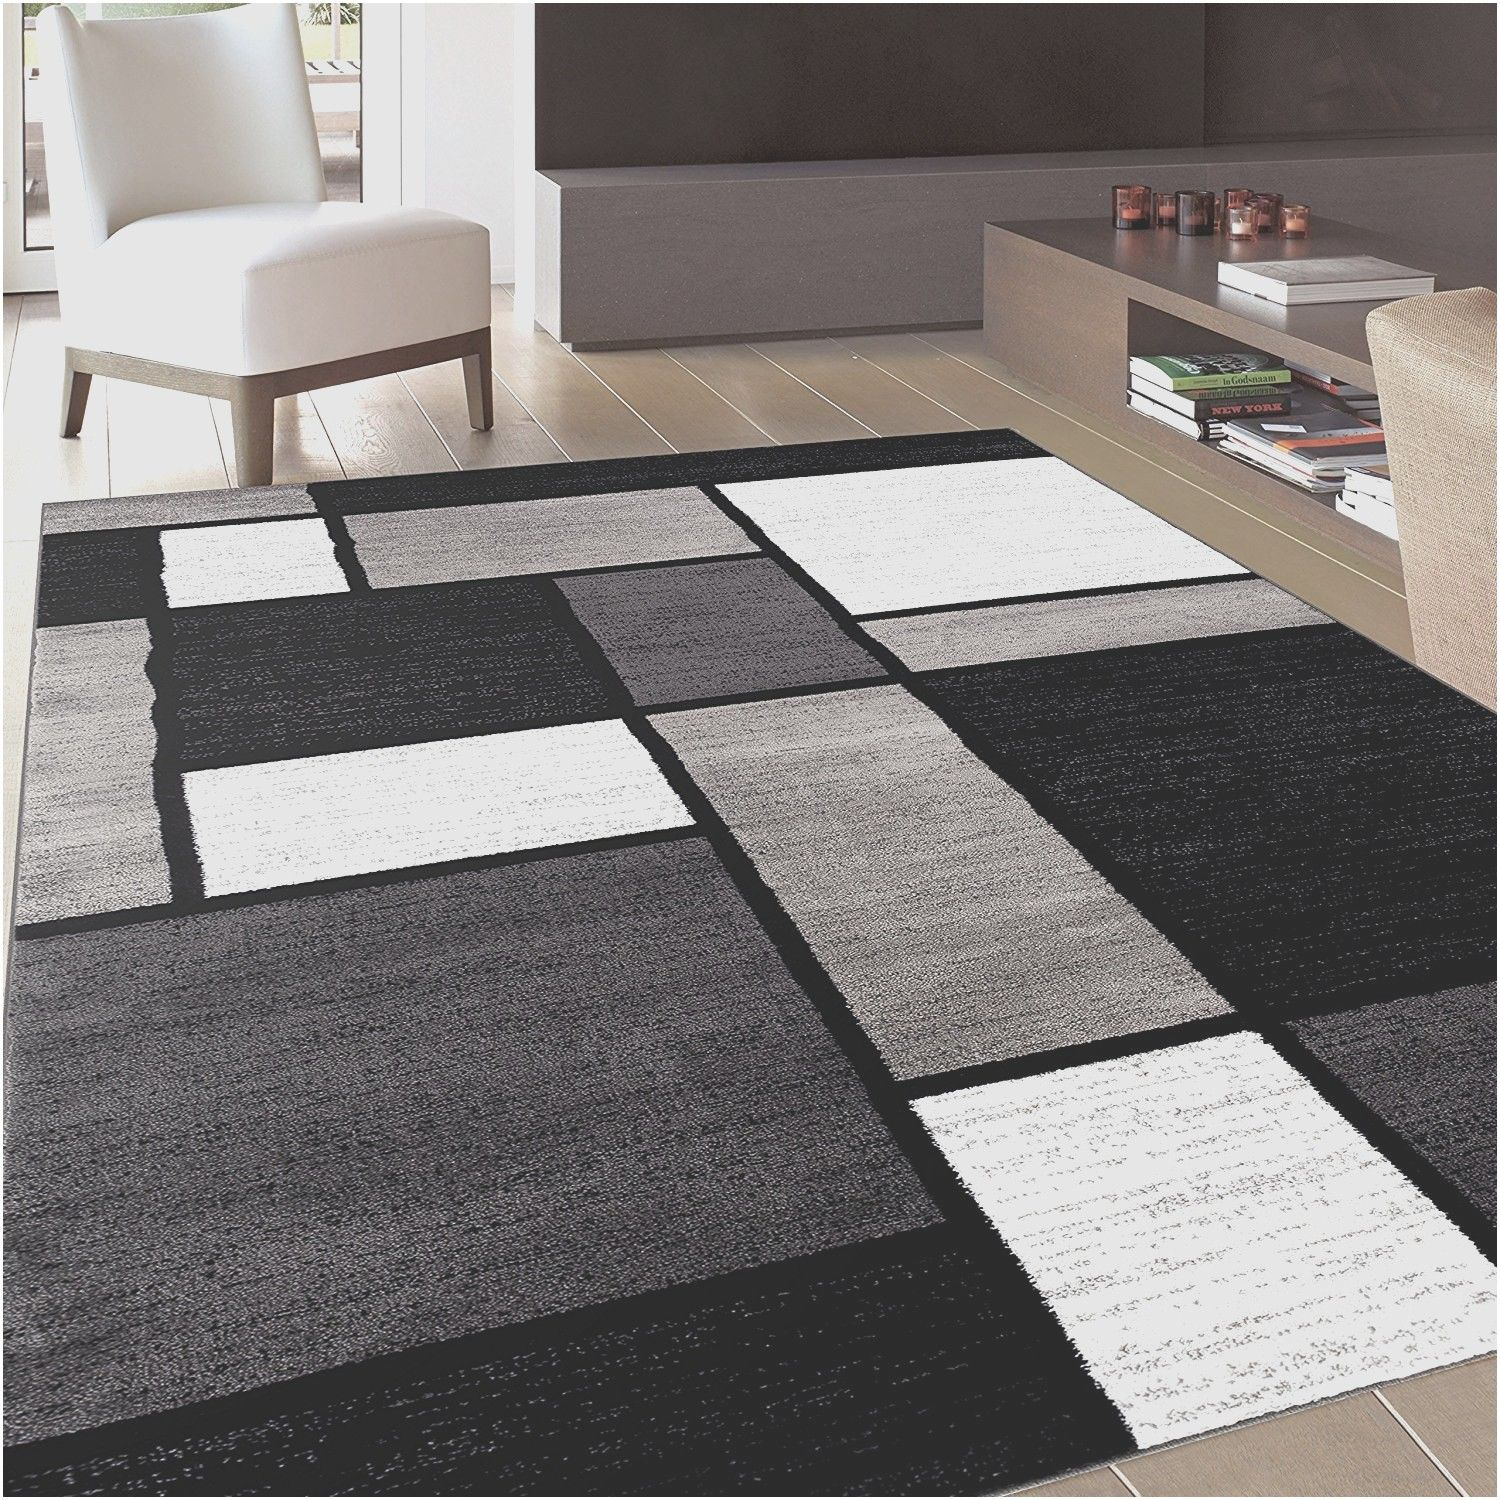 Carpet Ideas For Living Room Luxury Black And White Area Rugs Best Rug Variety Bellissimainteriors Contemporary Area Rugs Modern Area Rugs Rugs In Living Room